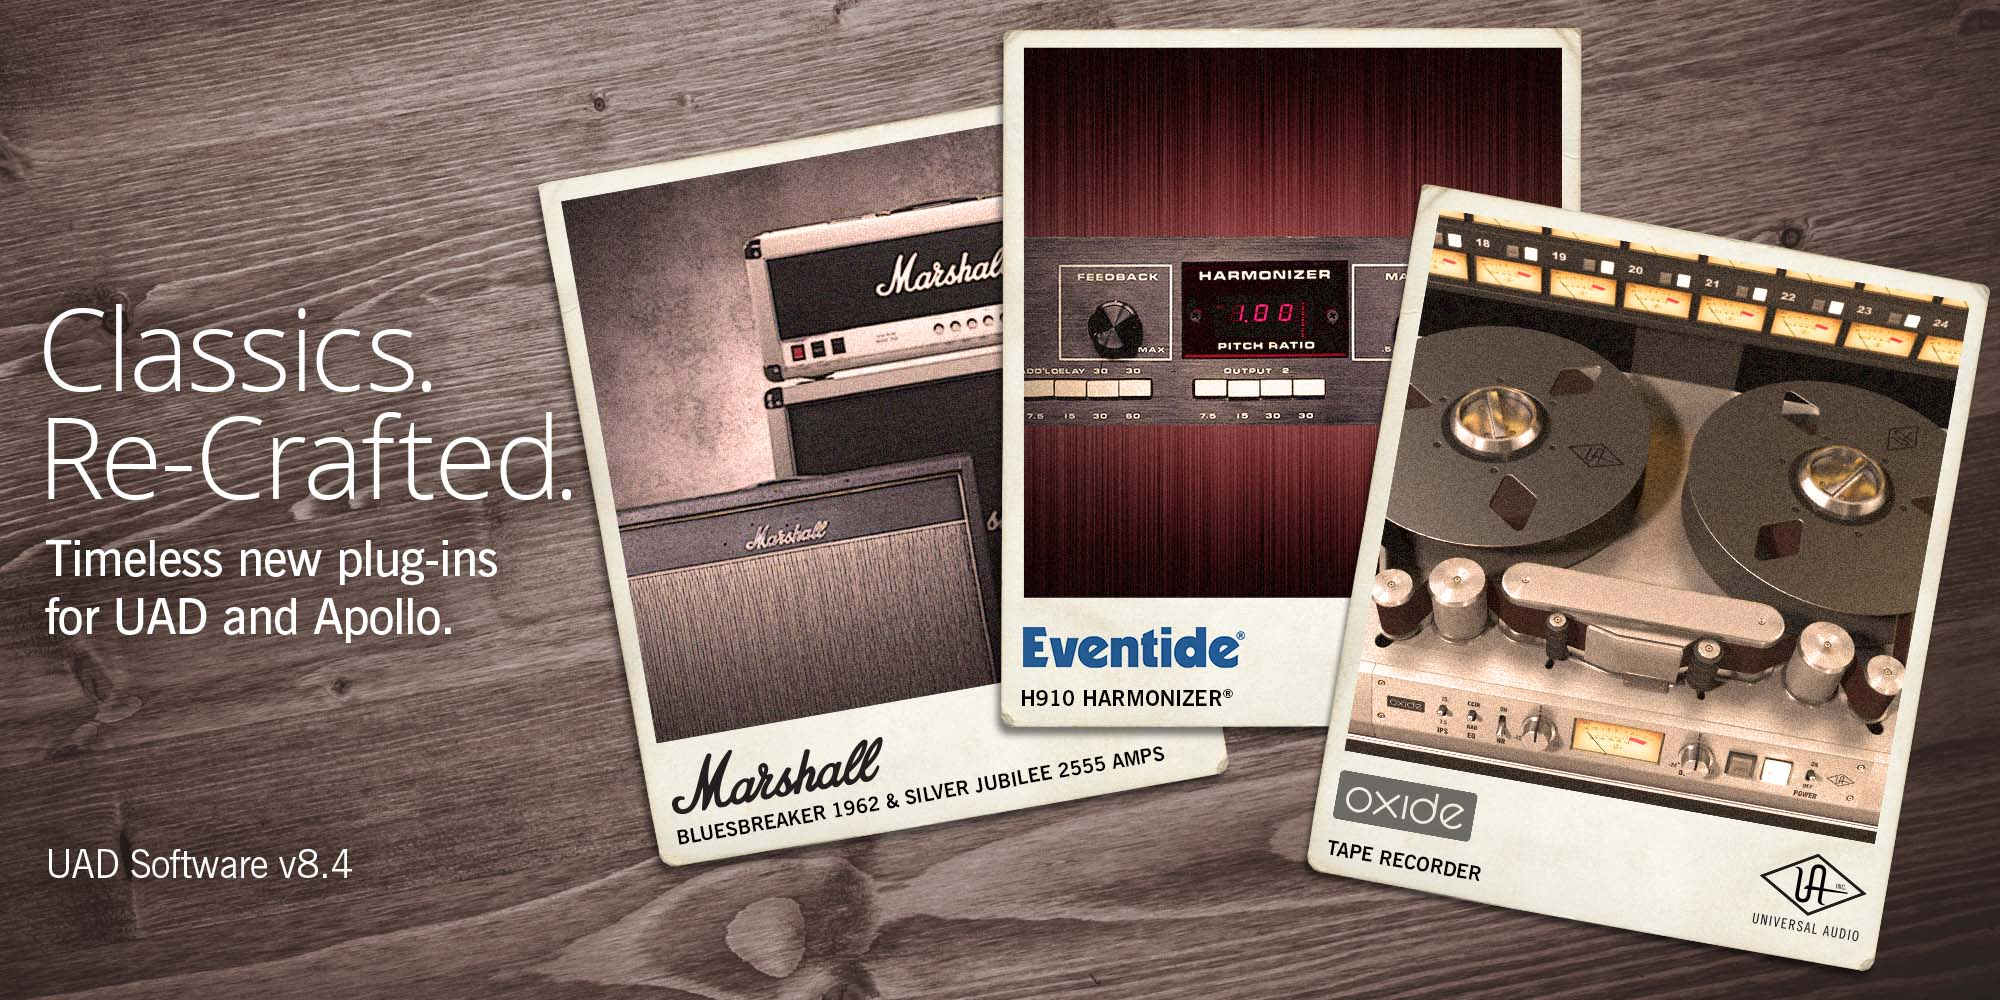 Classics. Re-Crafted. Timeless new plug-ins for UAD and Apollo. UAD Software v8.4